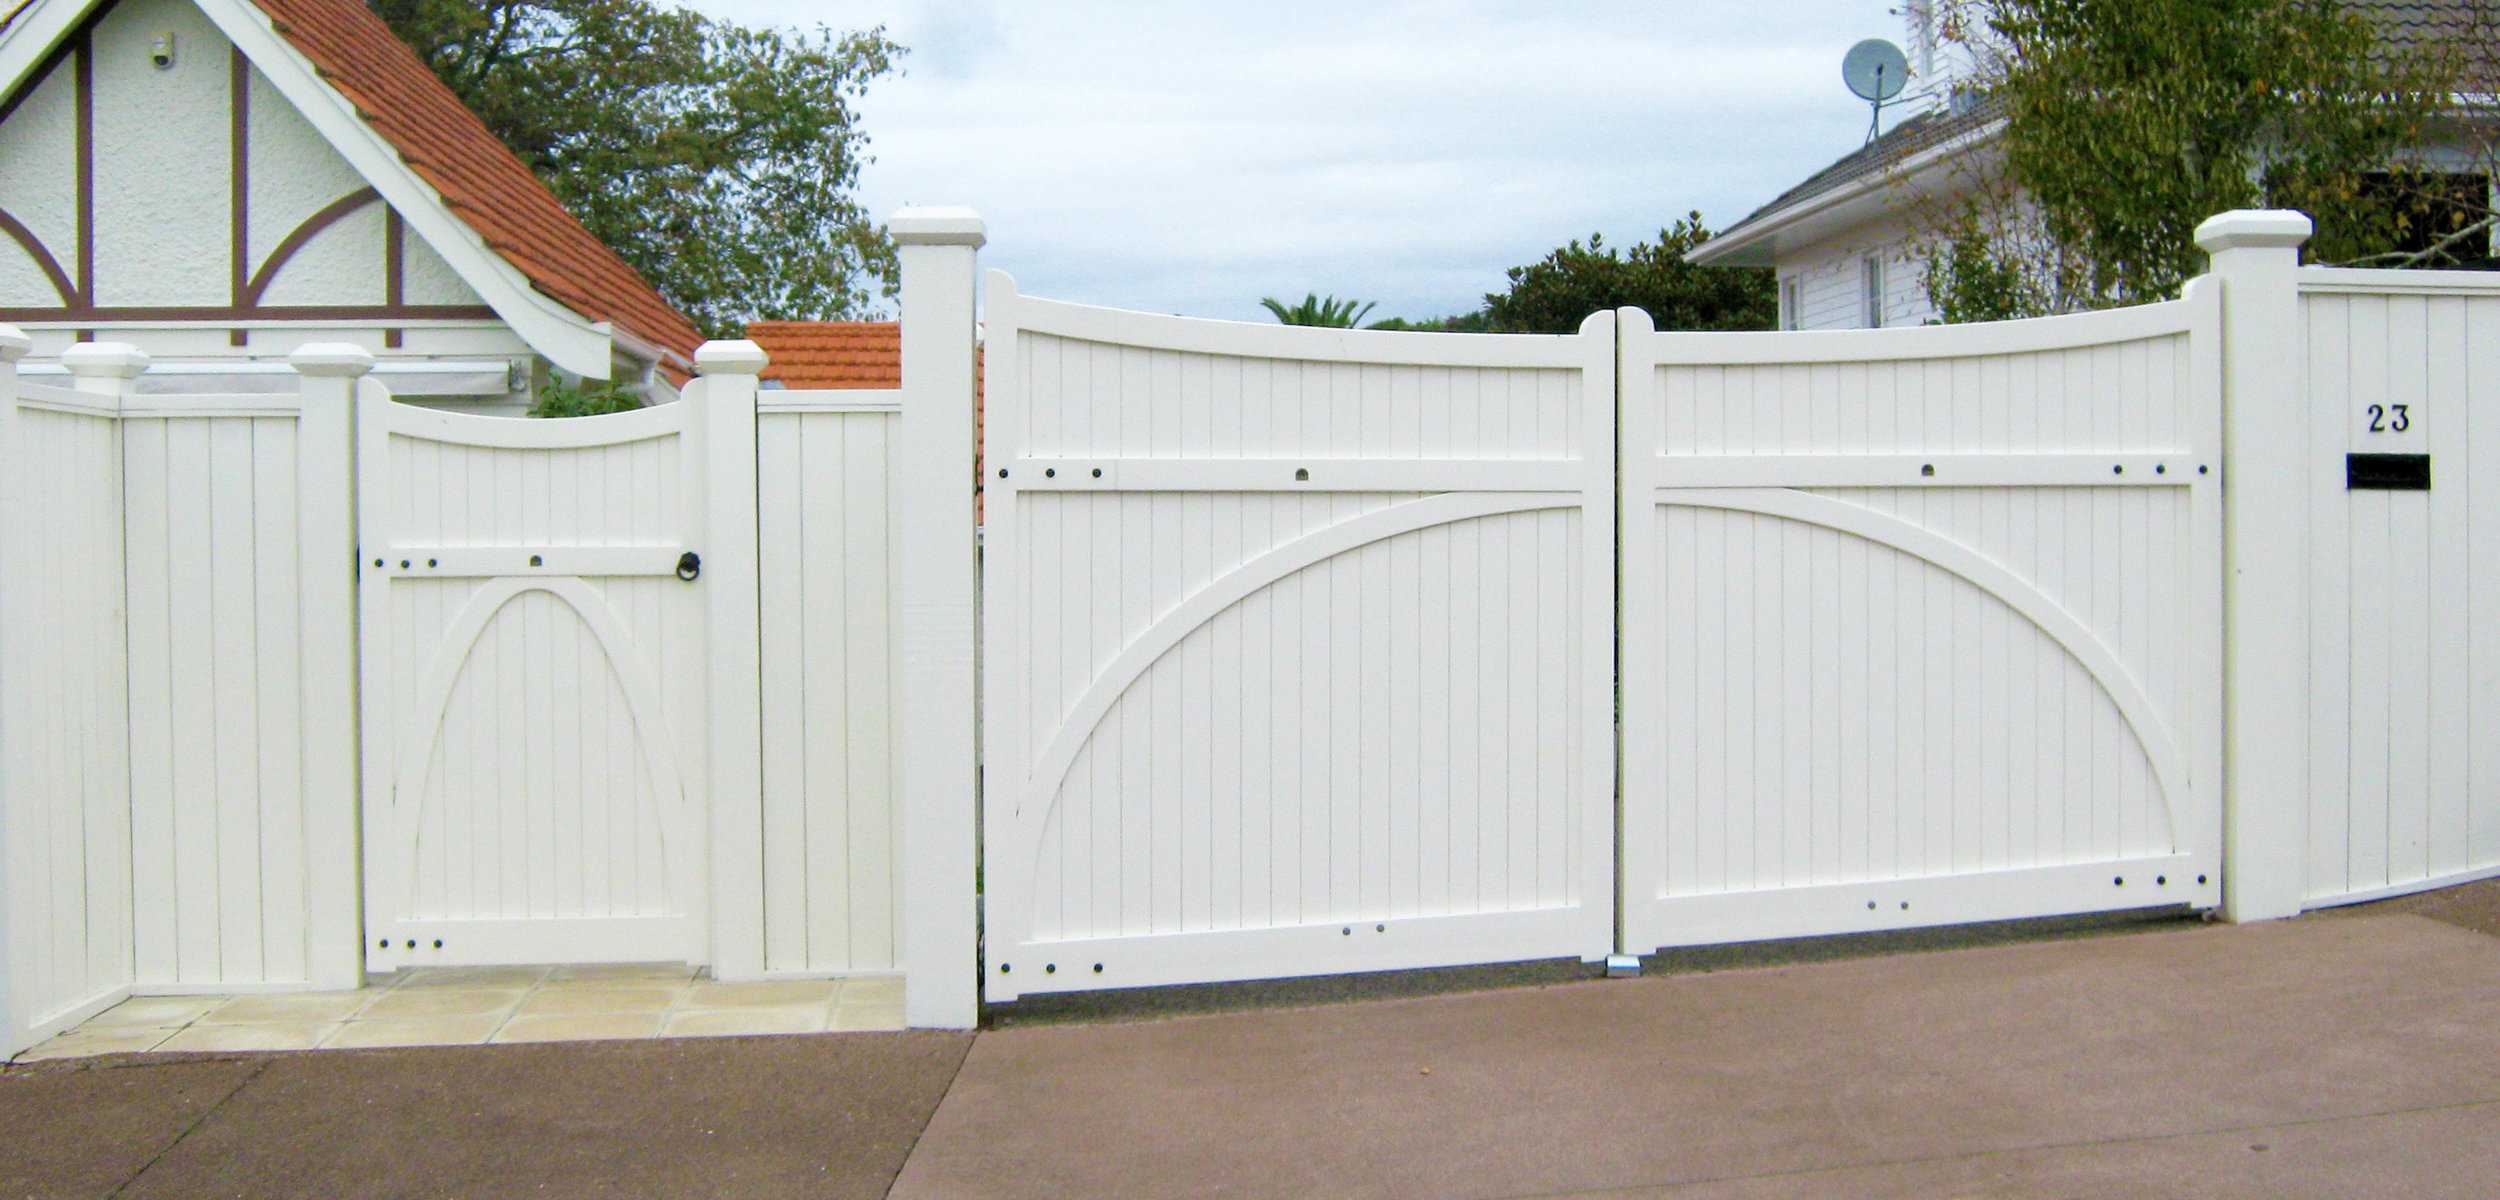 (28) Heritage gates with tongue & groove fence